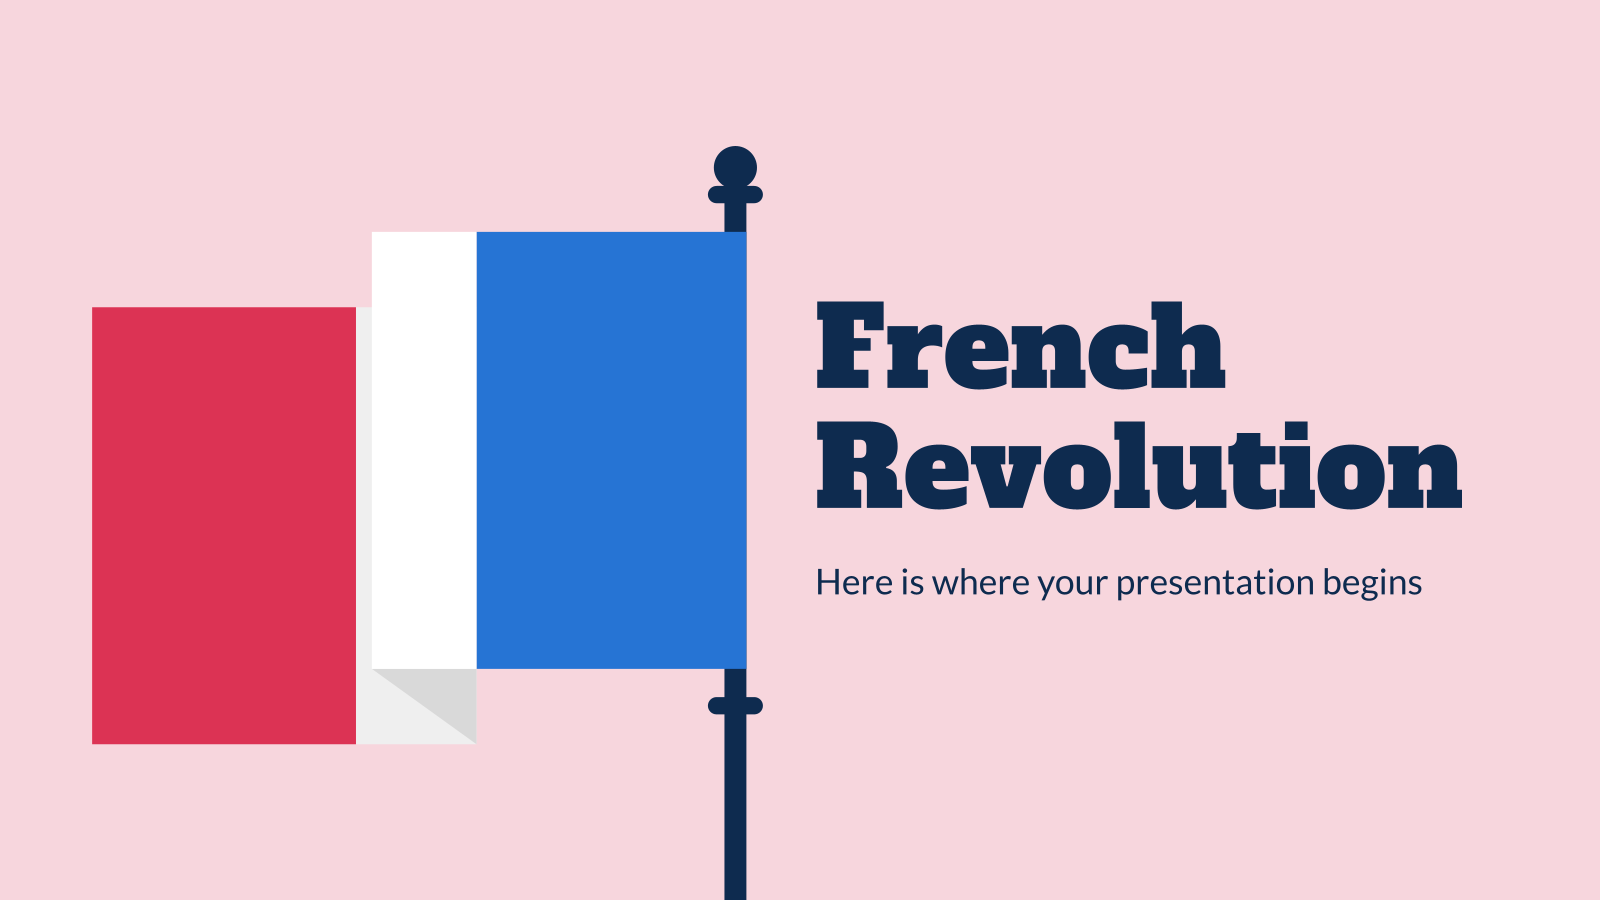 French Revolution presentation template